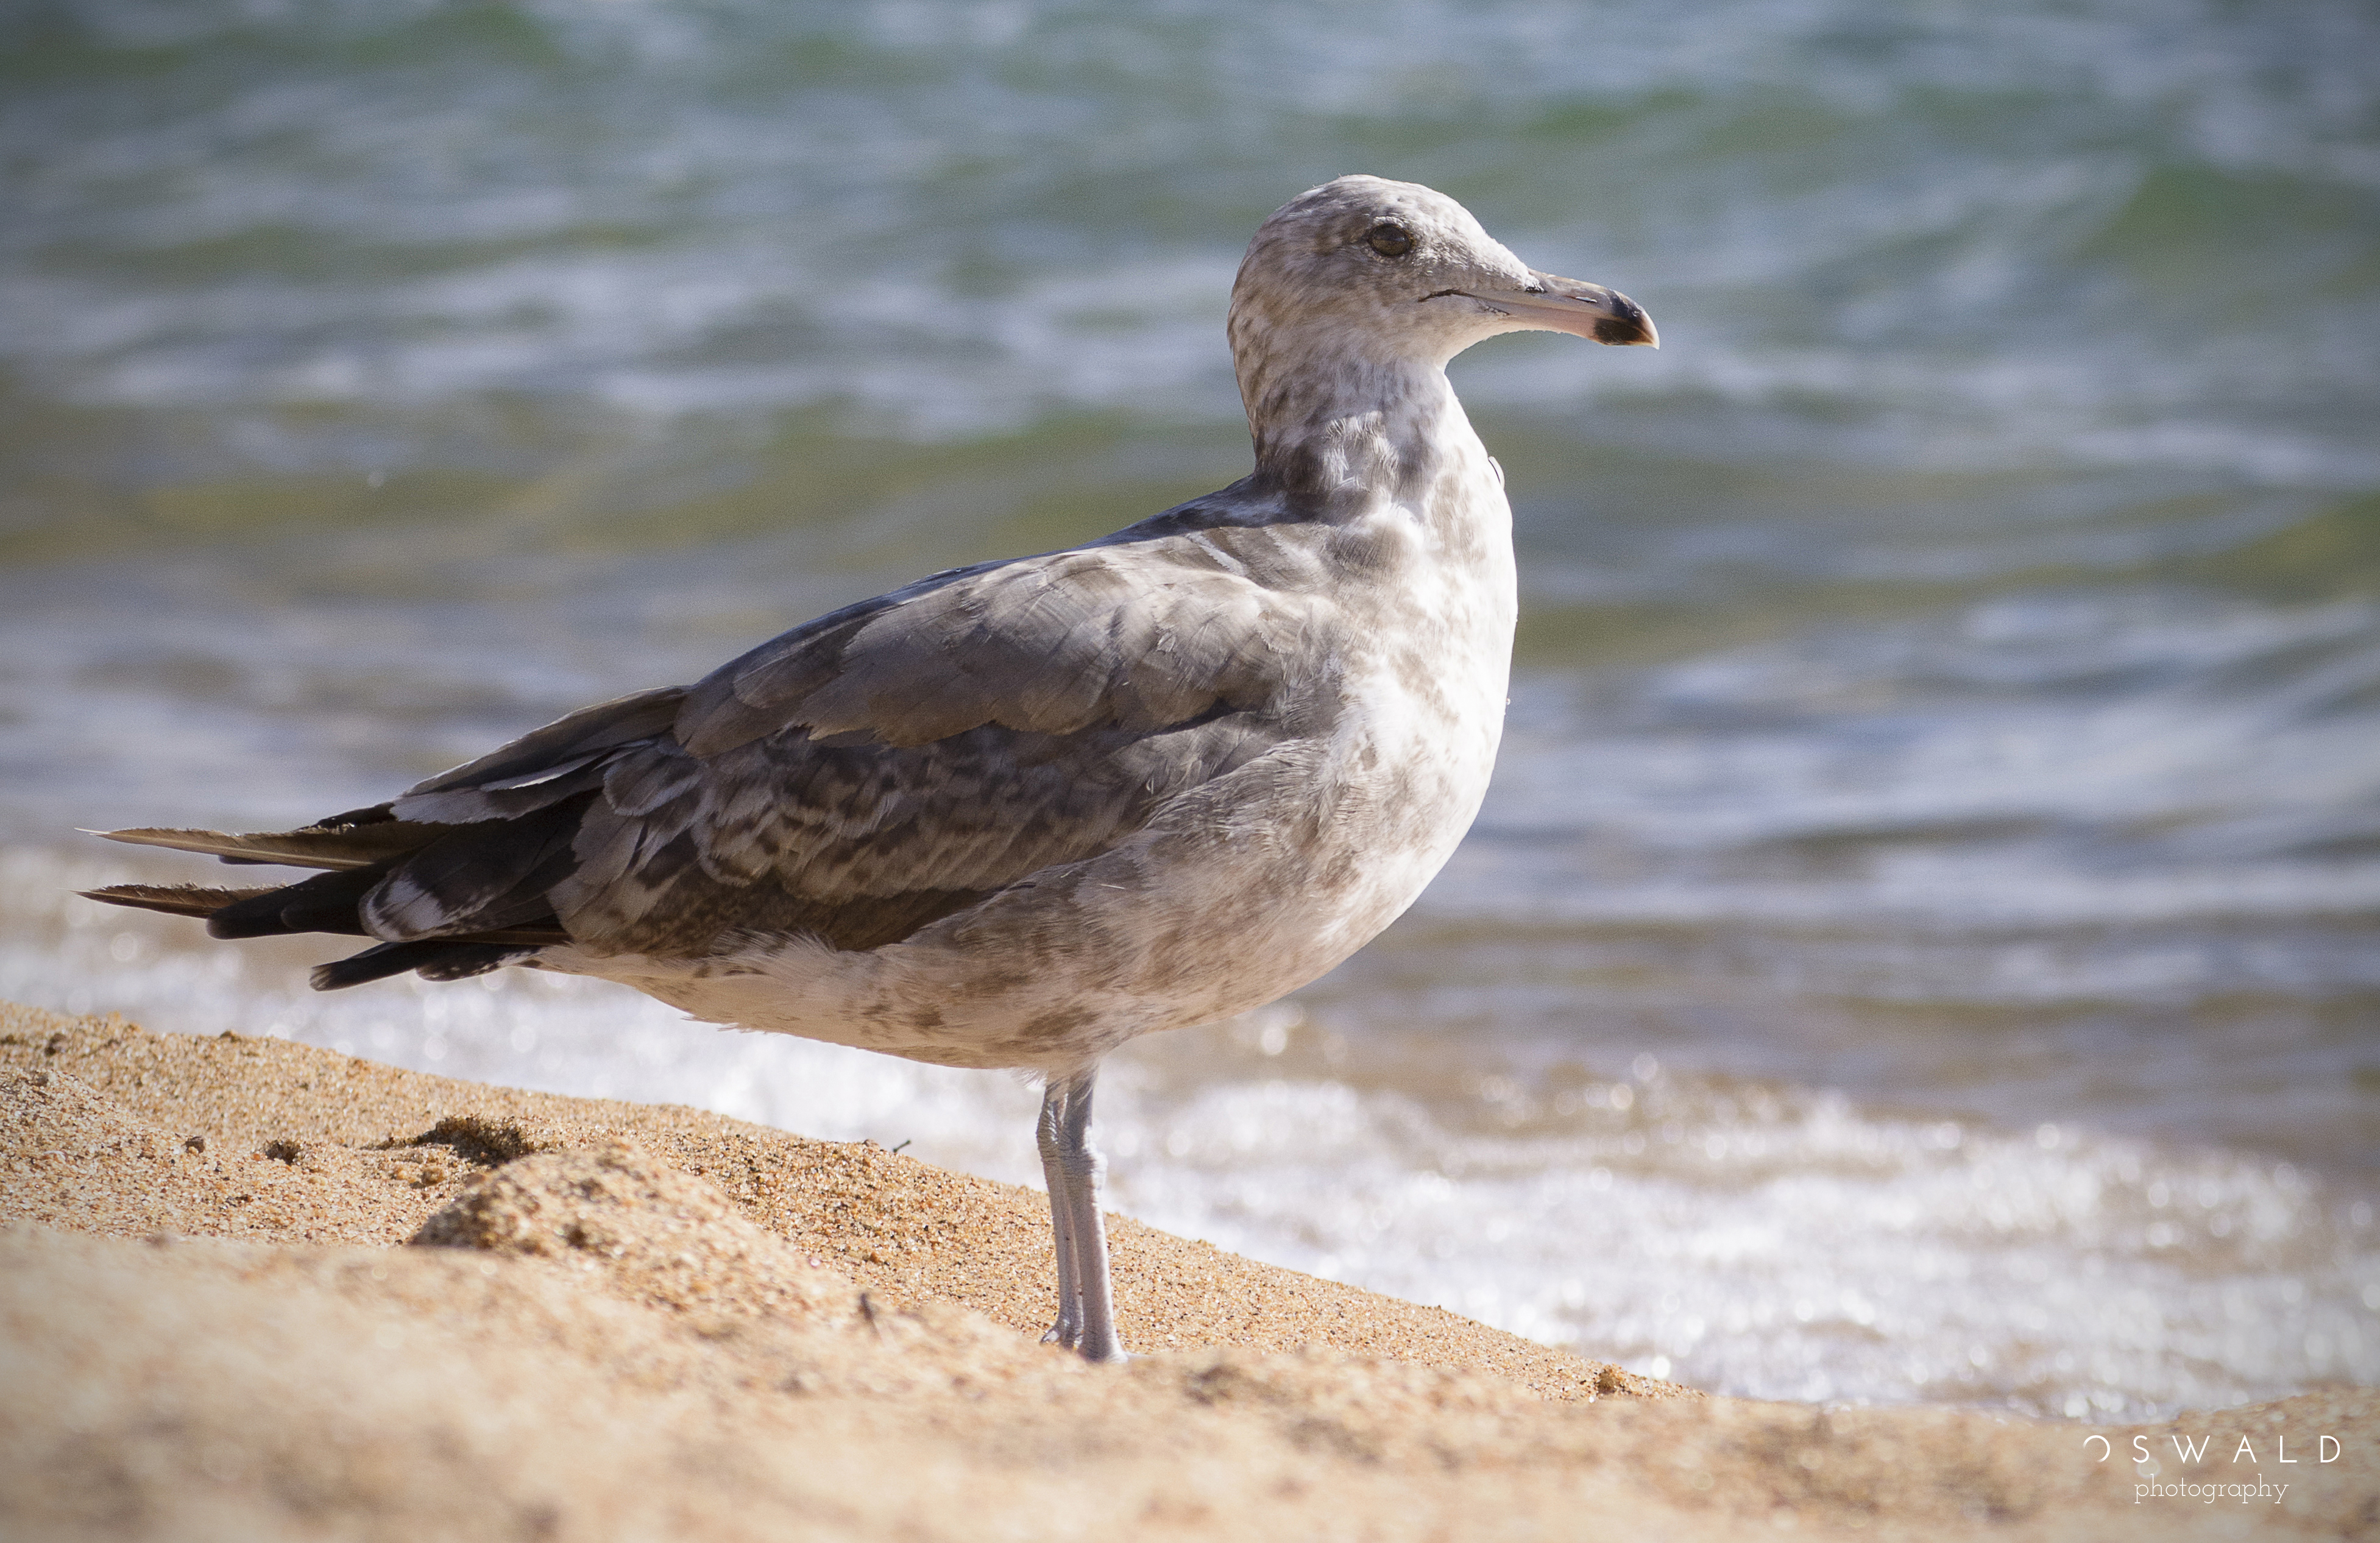 Sharp focus upon a single seagull standing at peace on sandy shores of Lake Tahoe in Nevada.